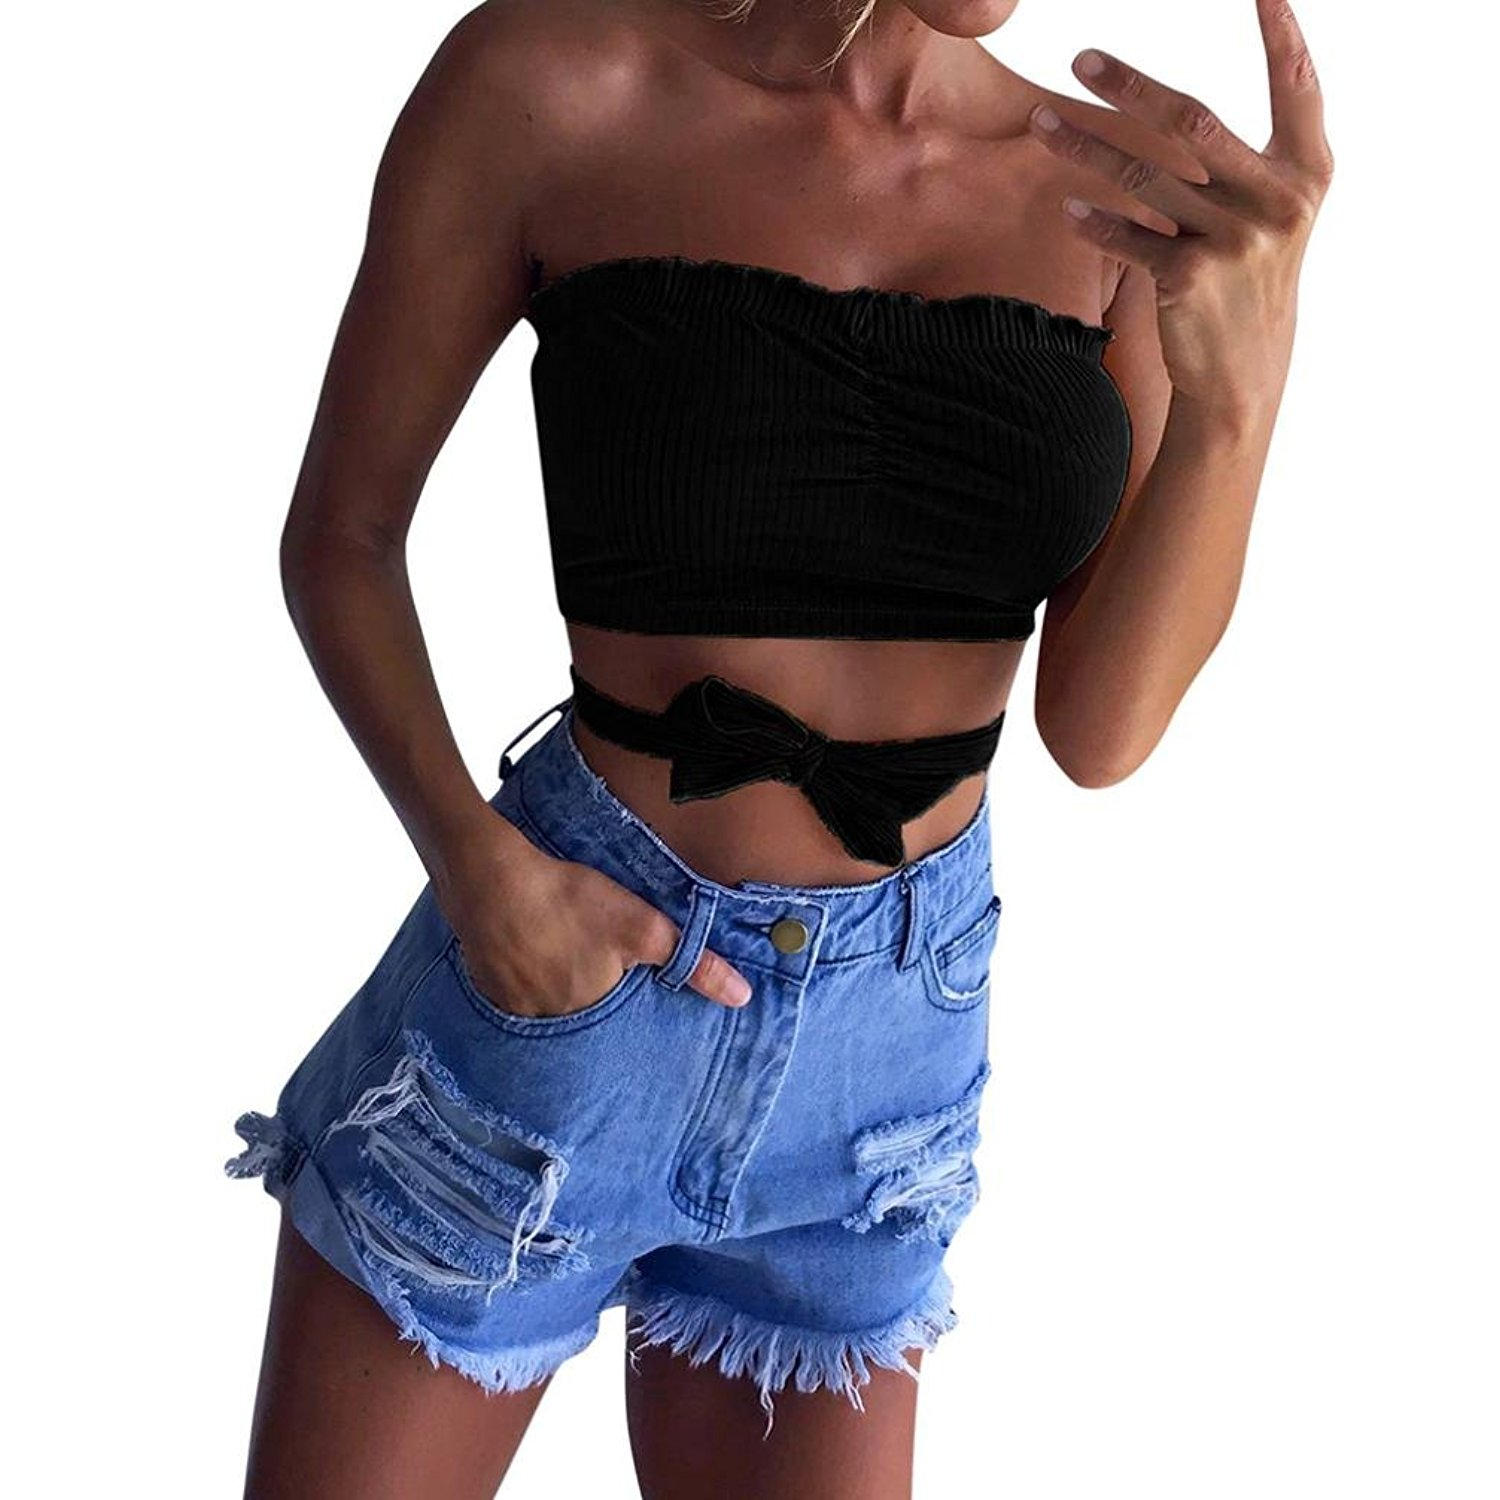 126bcd8edf8 Get Quotations · WuyiMC Breast Wrap for Teen Girls